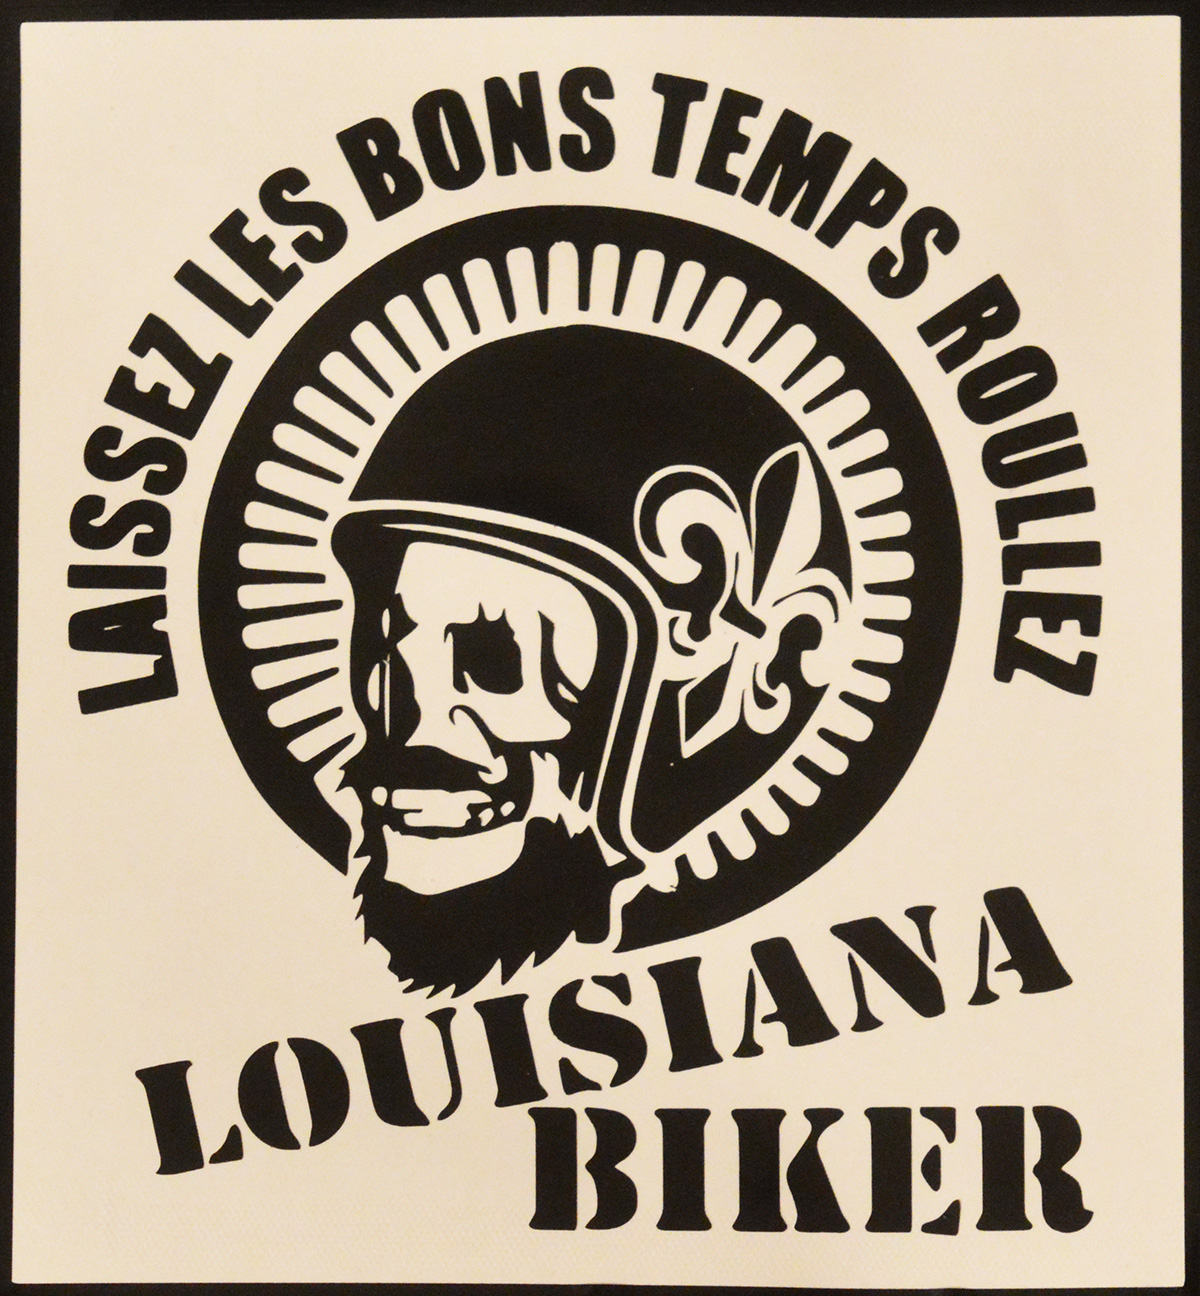 Louisiana Biker Magazine